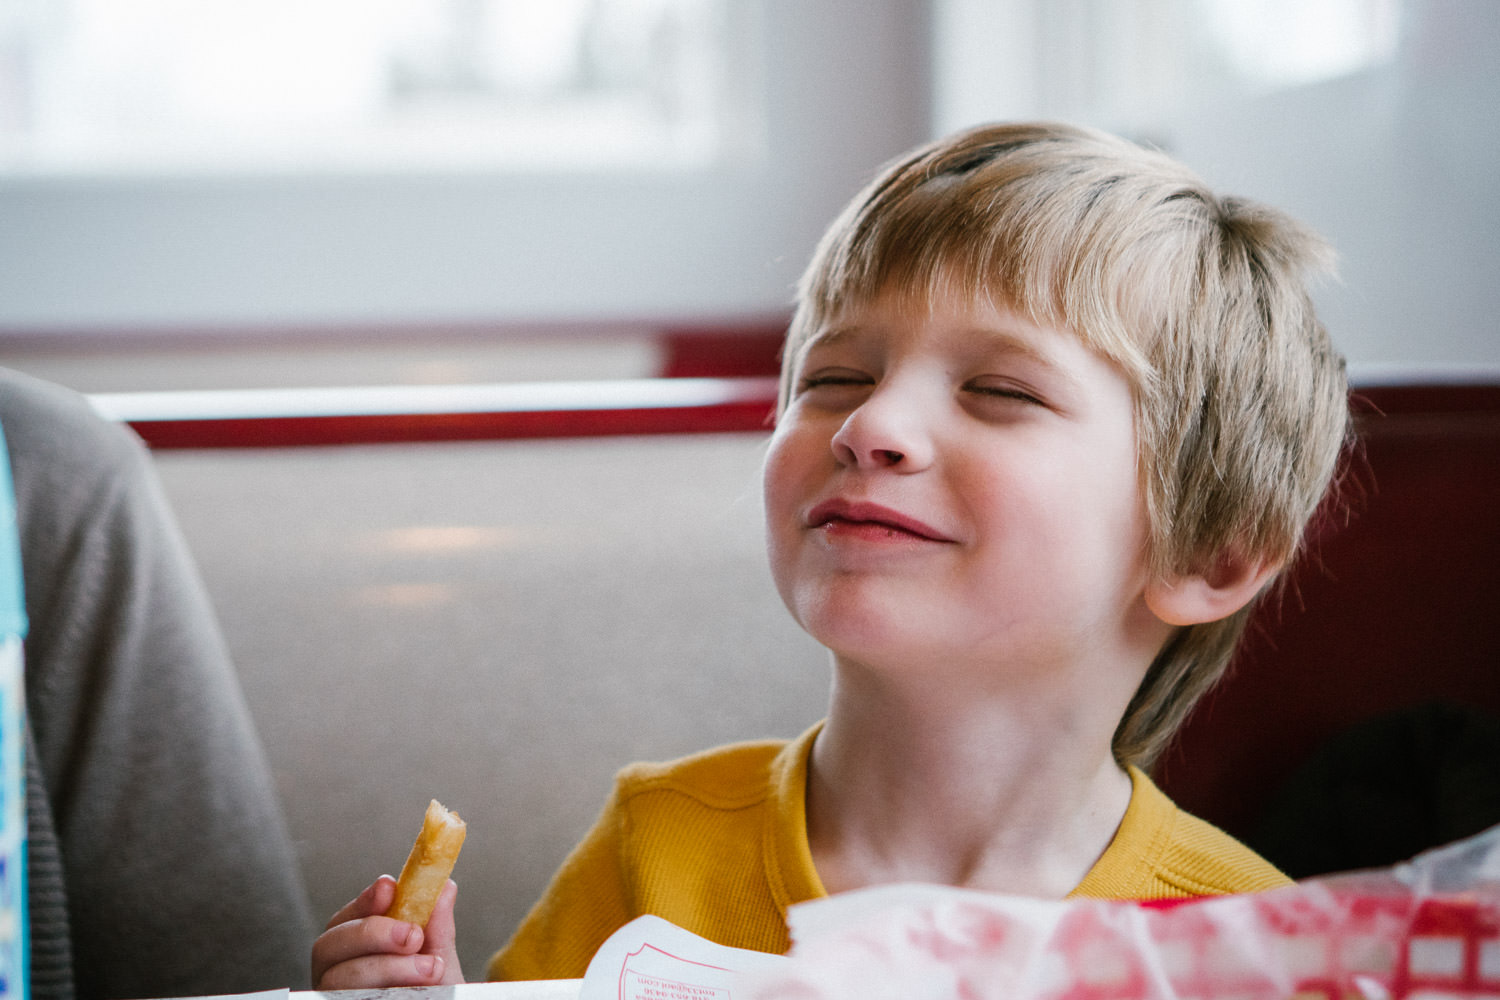 A little boy smiles while eating a french fry in a diner.